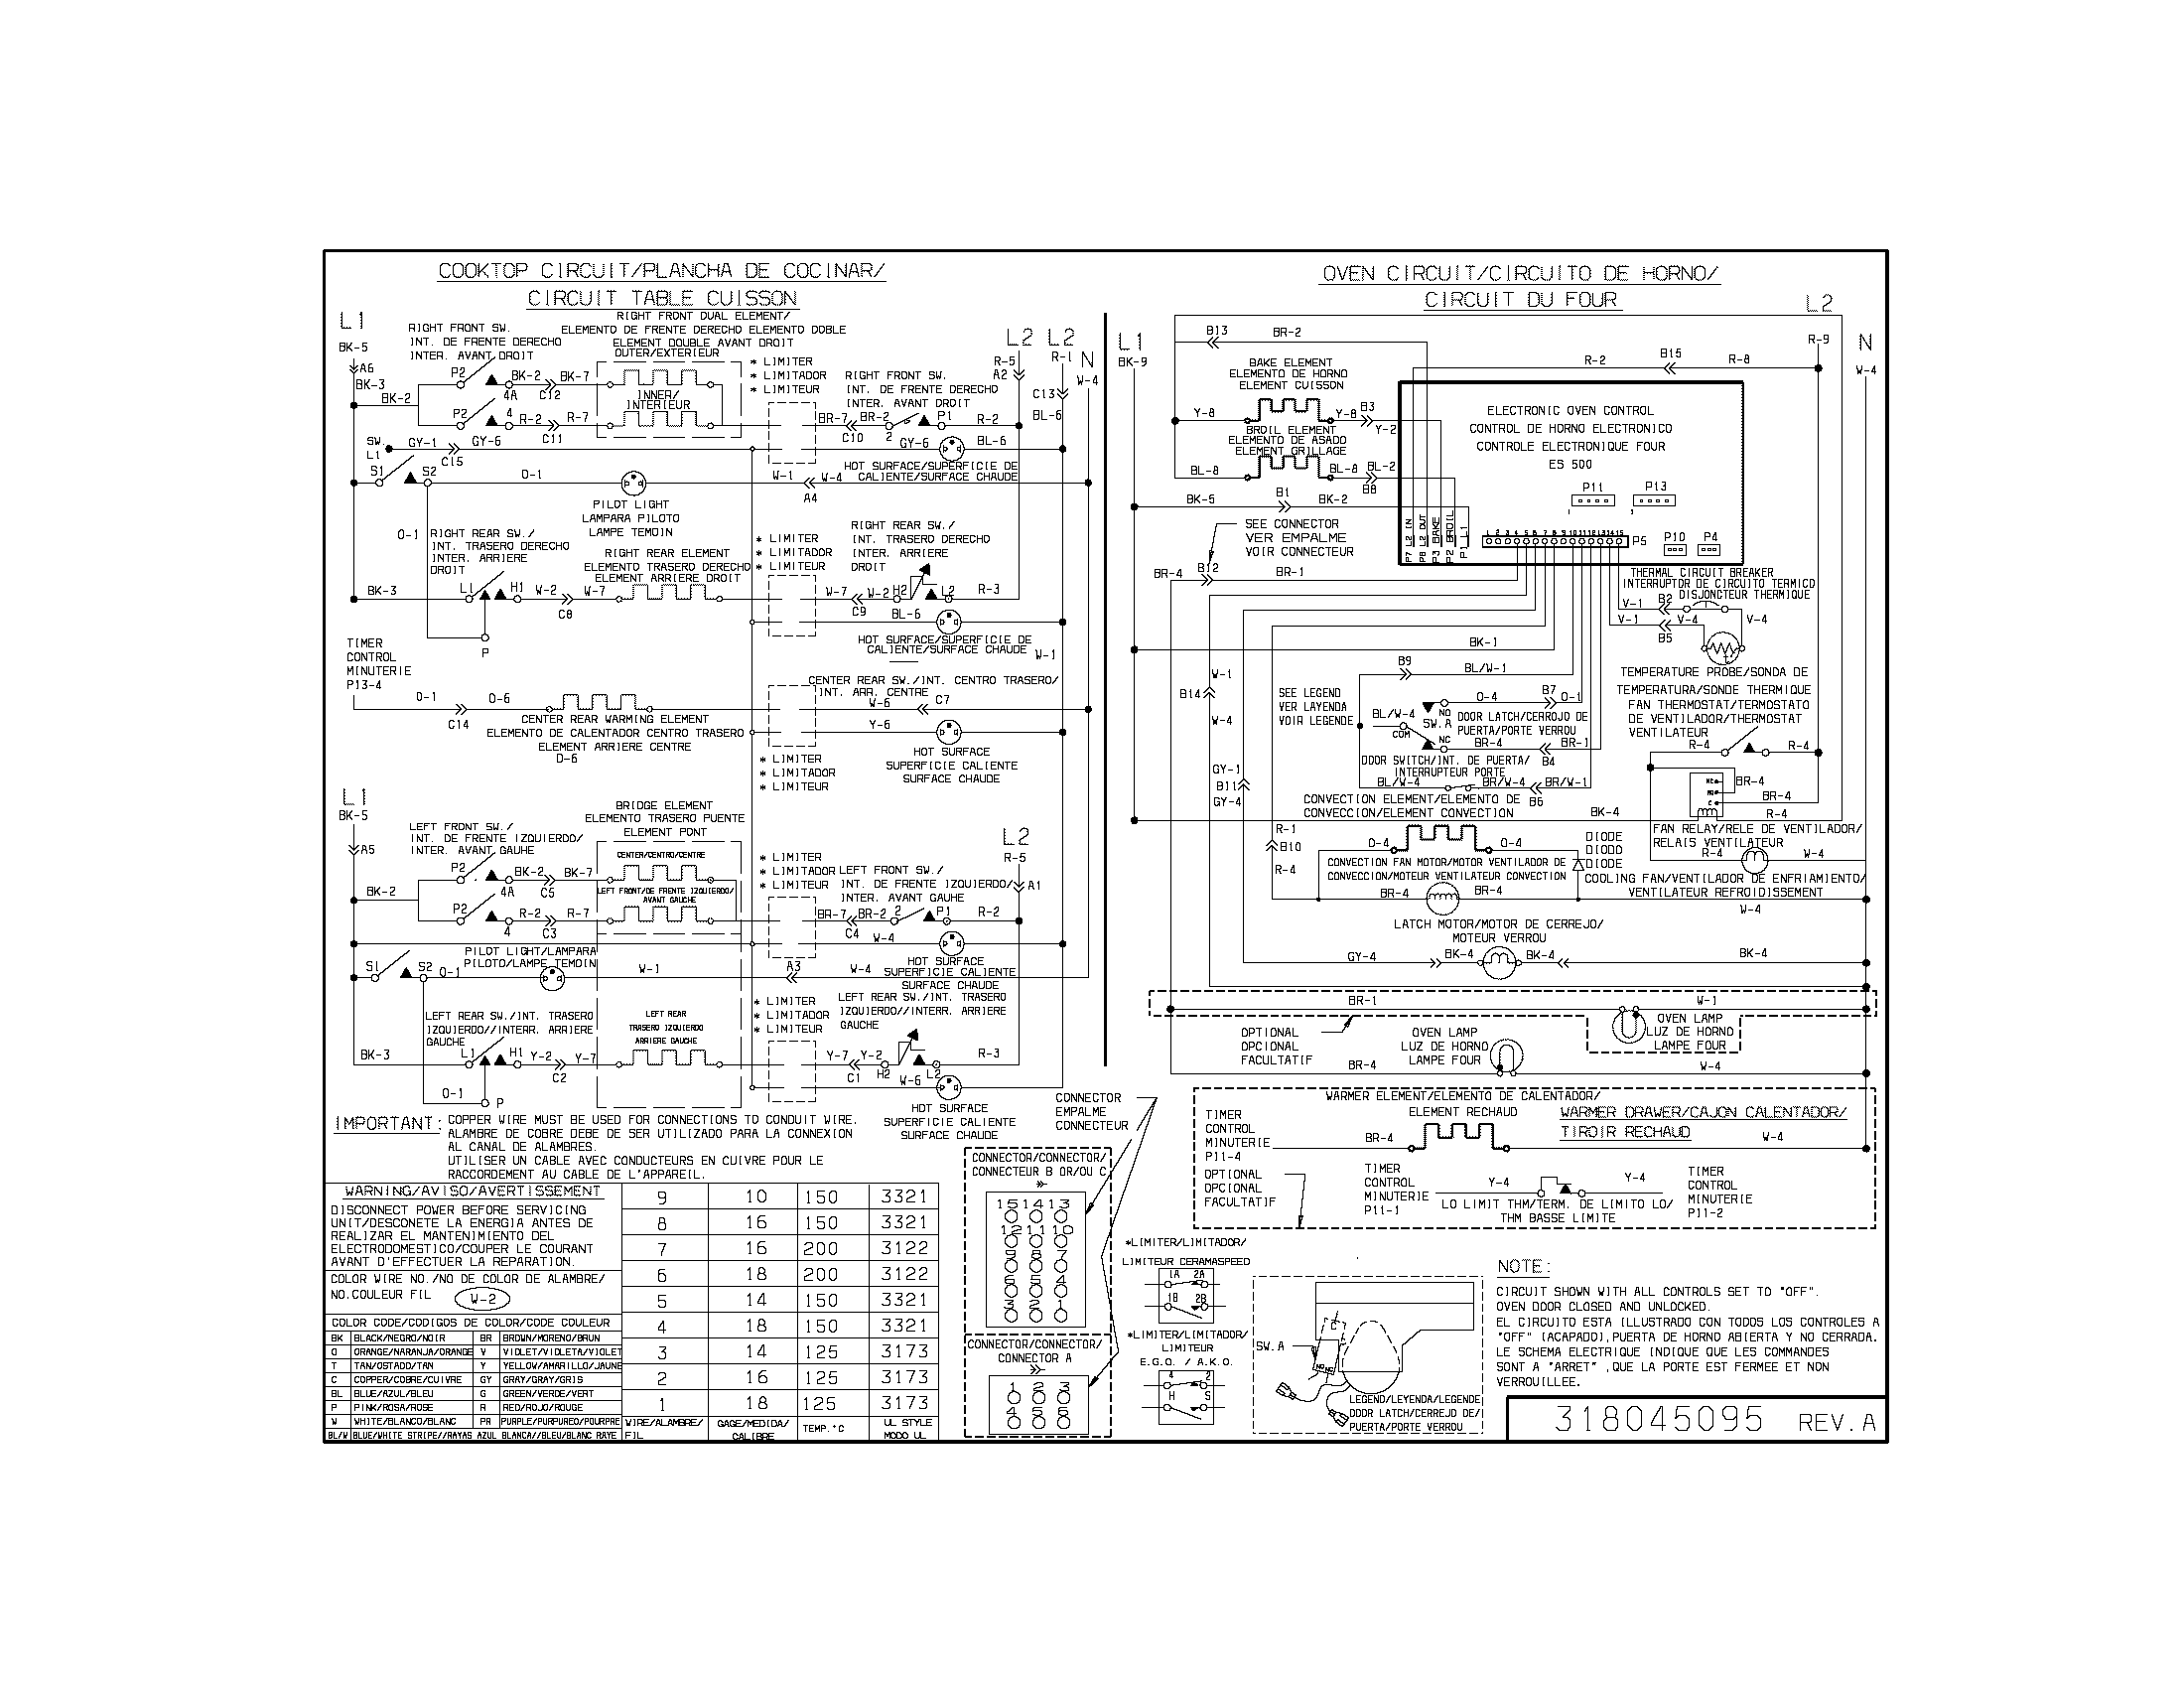 wiring diagram parts frigidaire cpes389cc1 range timer stove clocks and appliance timers wiring diagram frigidaire dryer at gsmx.co